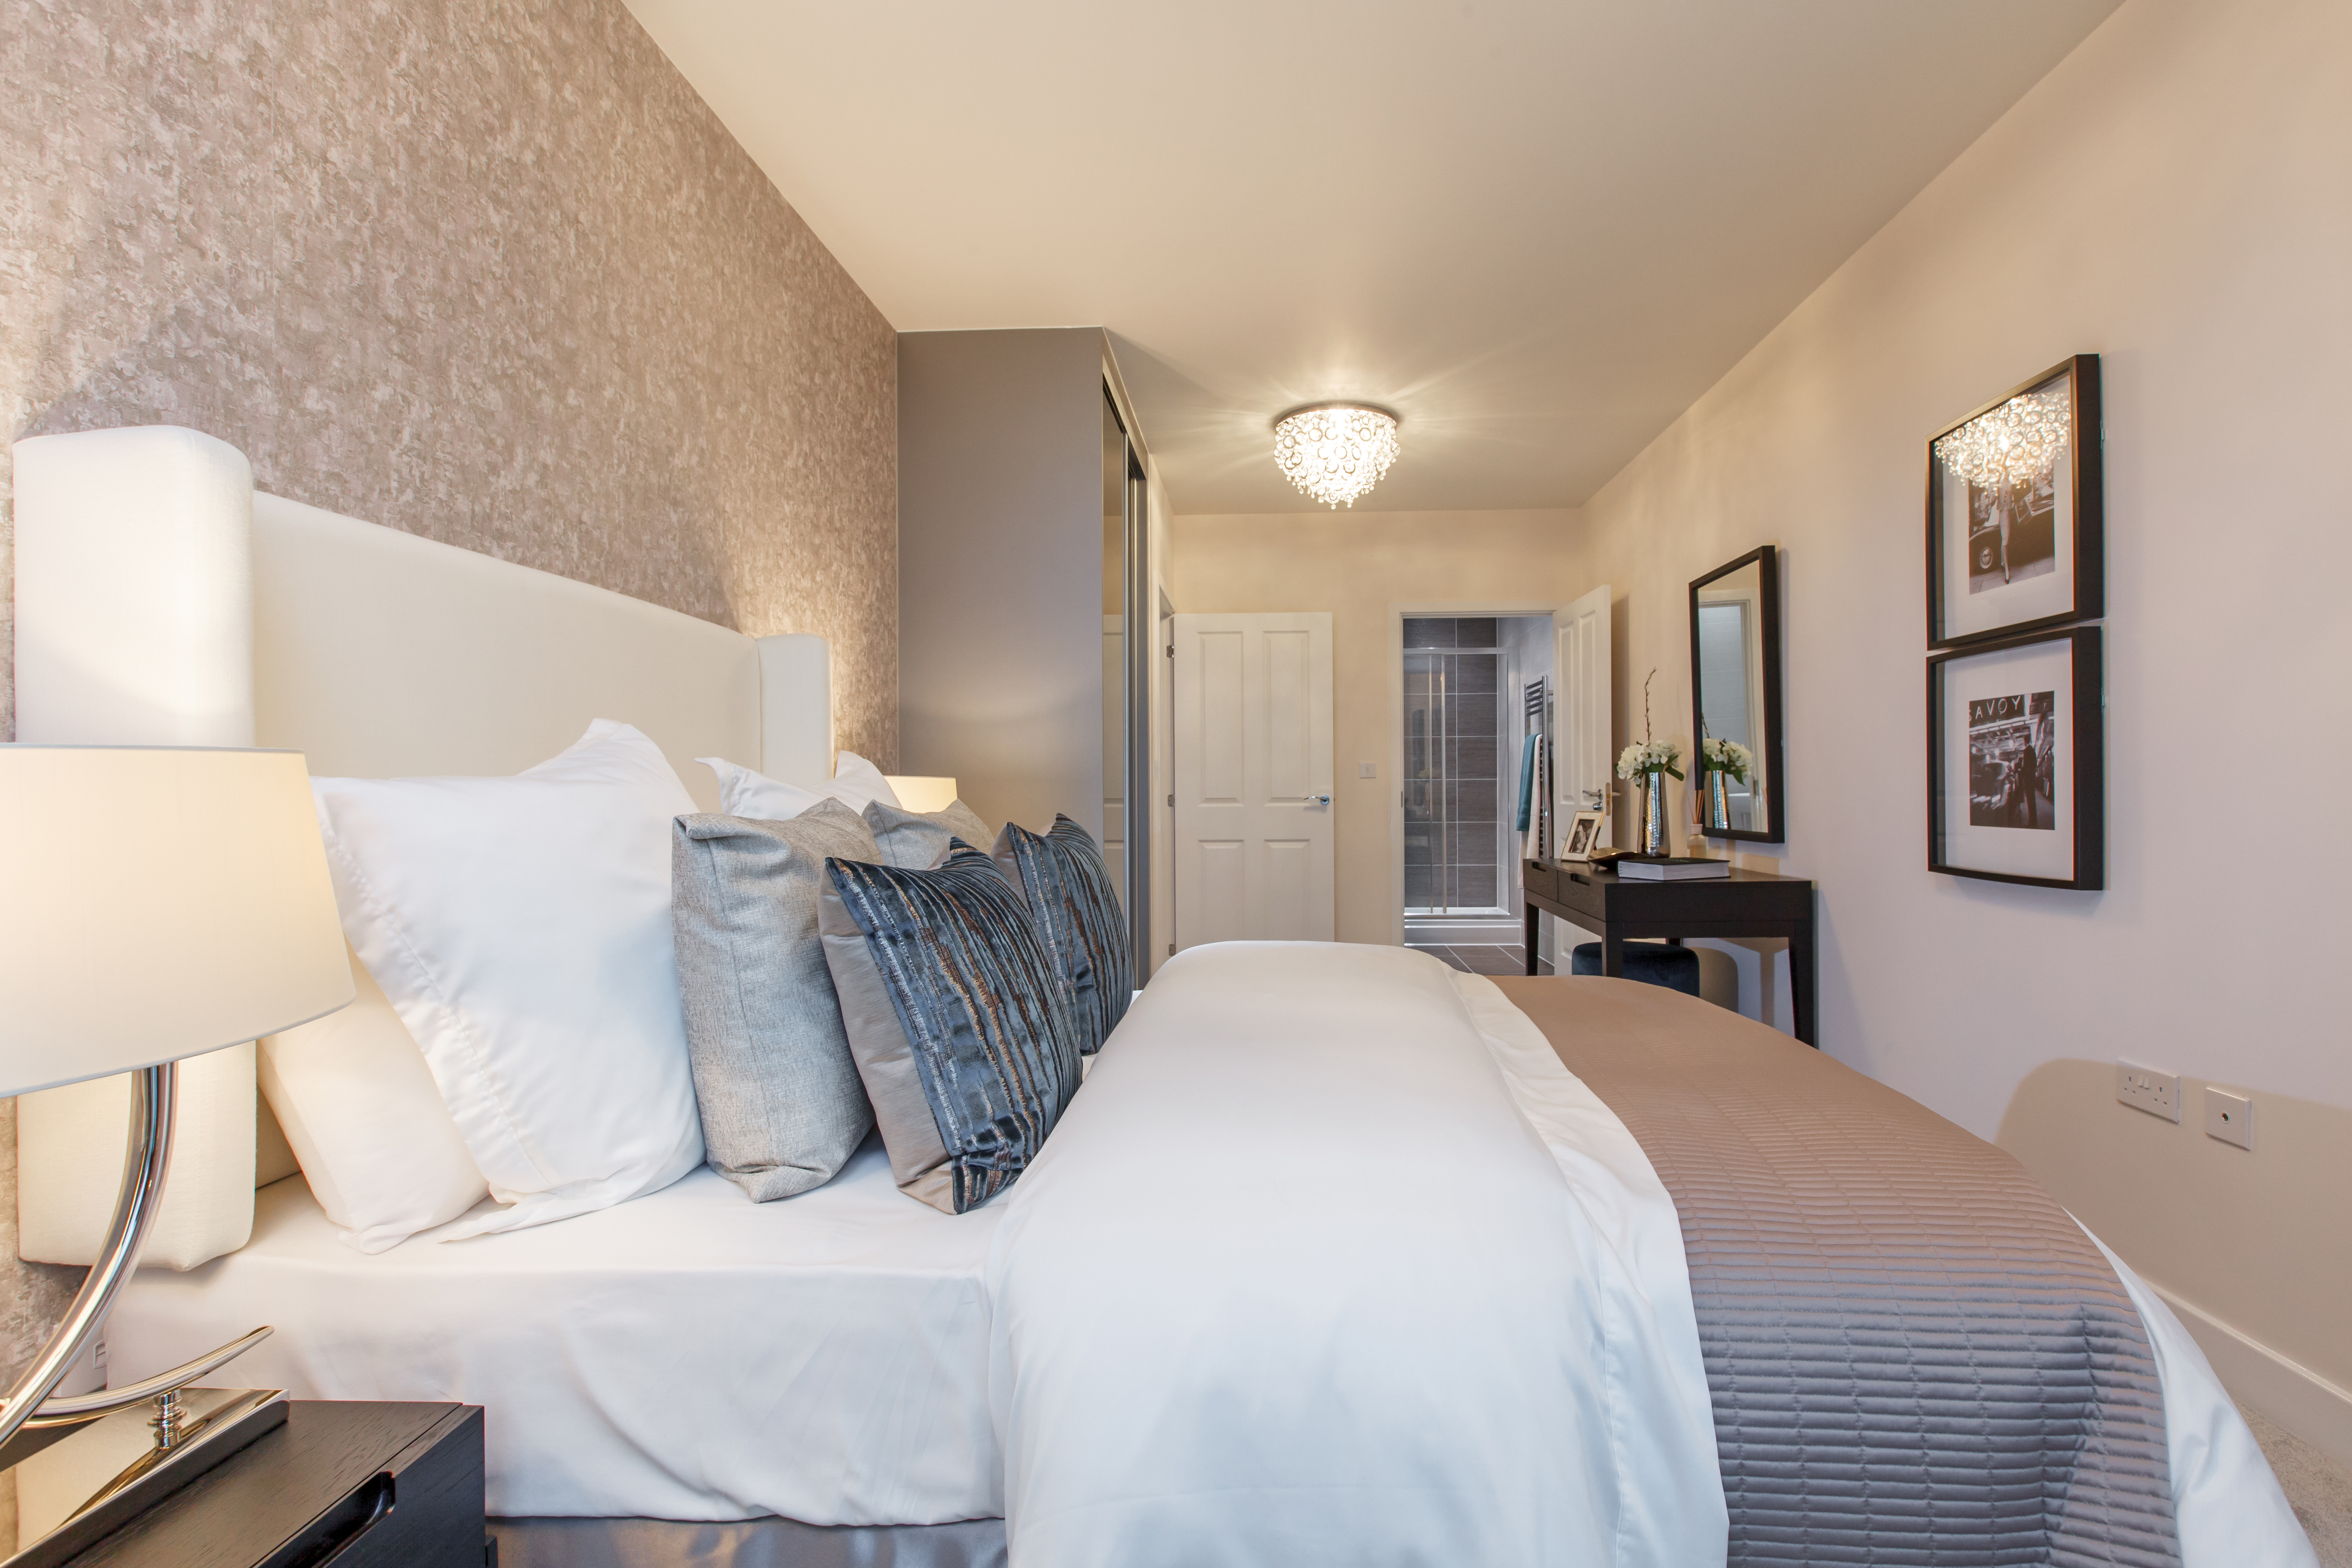 TW_NT_Millbrook Park_2 Bed Apartment_Bedroom_1_2